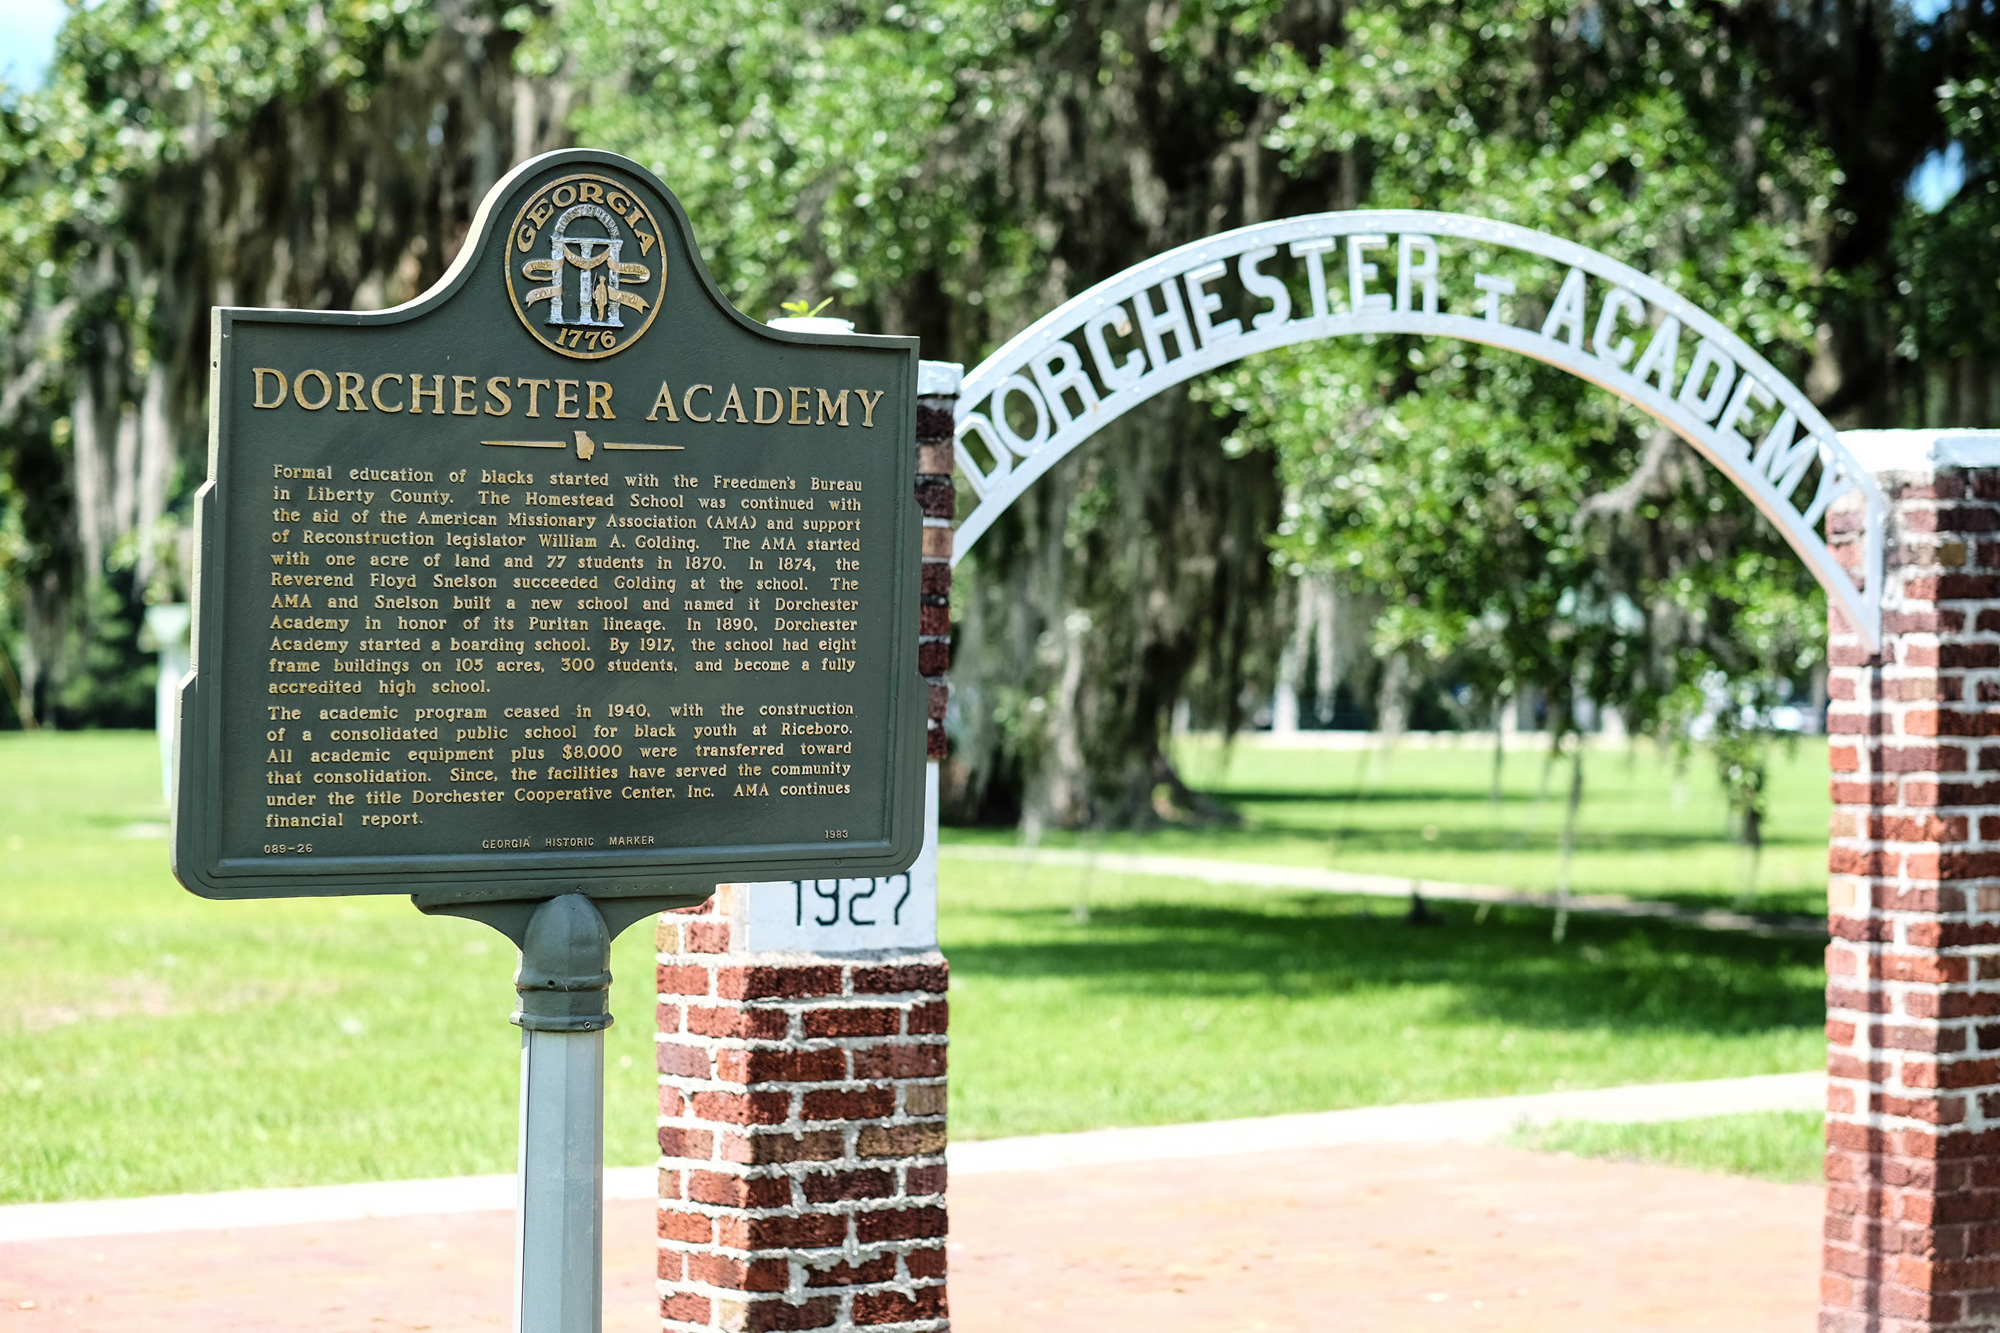 The historic marker at Dorchester Academy in Midway, Georgia